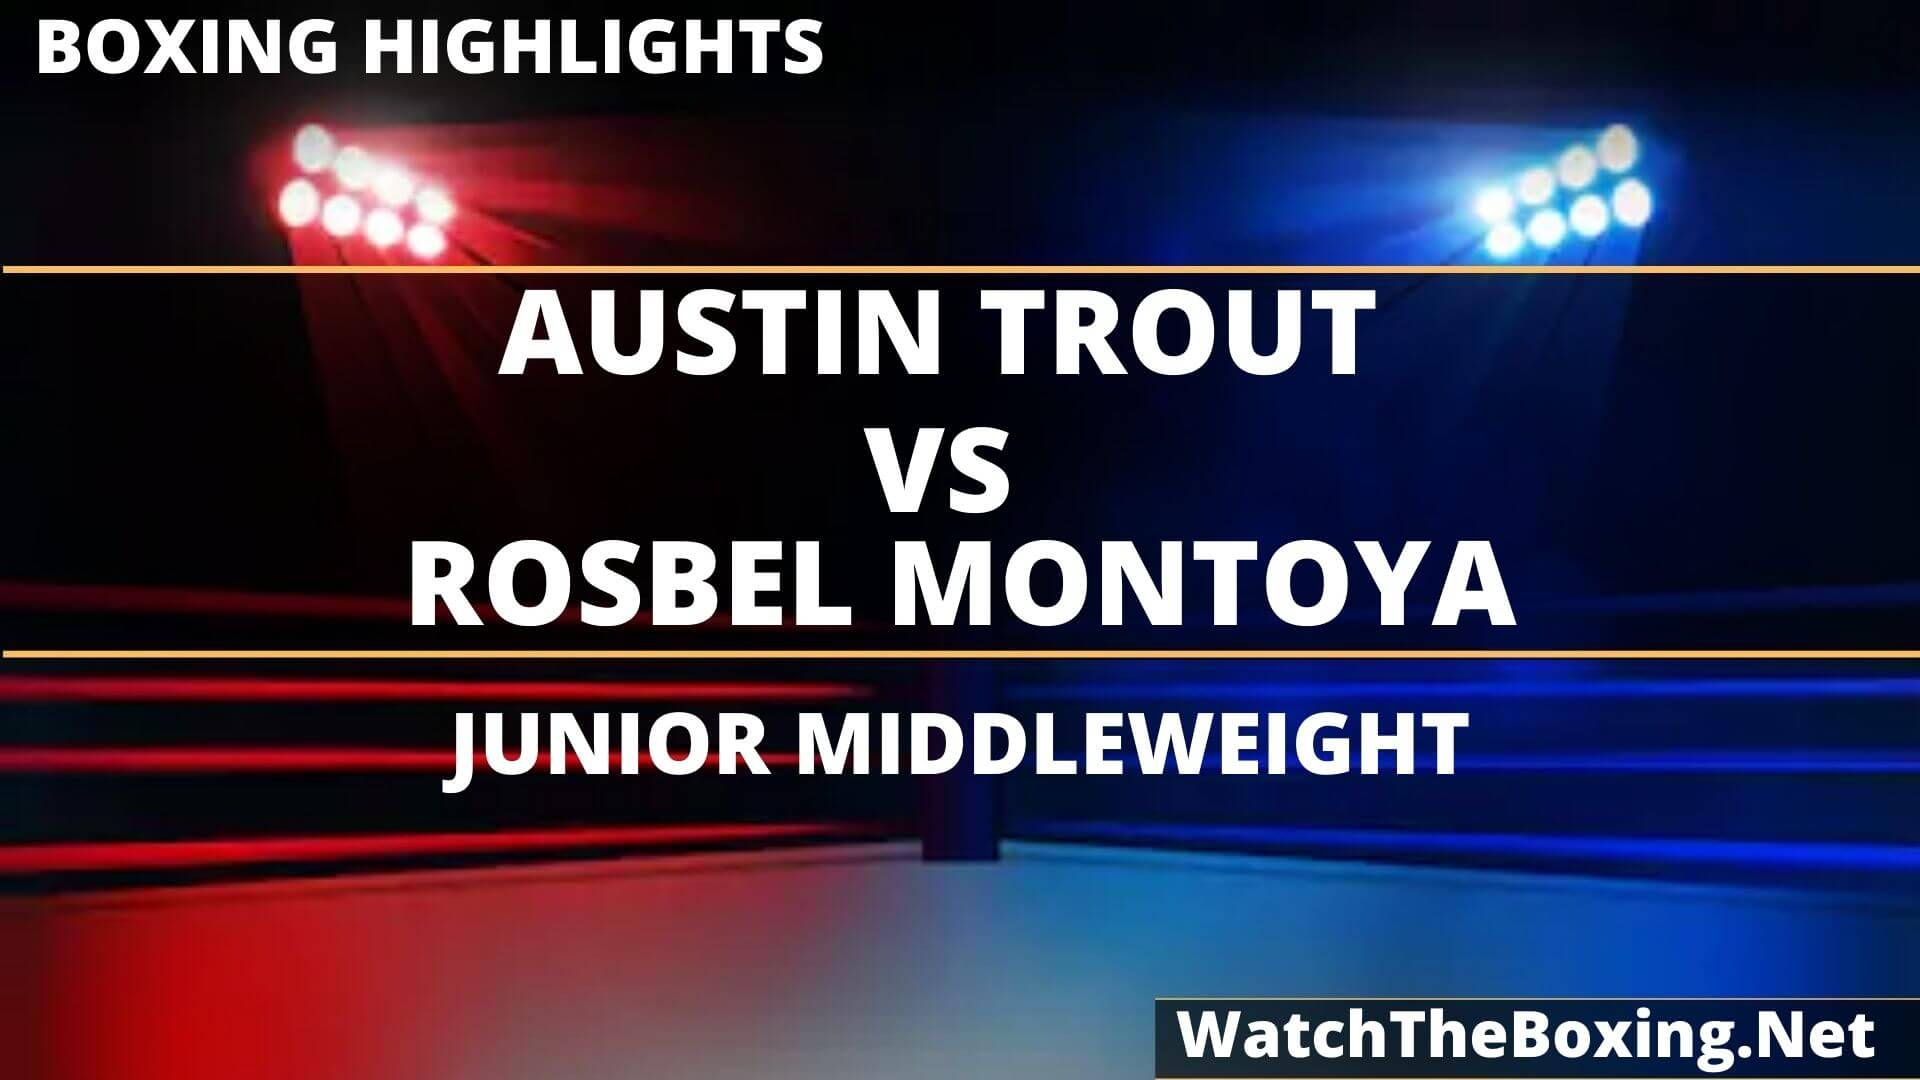 Austin Trout Vs Rosbel Montoya Highlights 2020